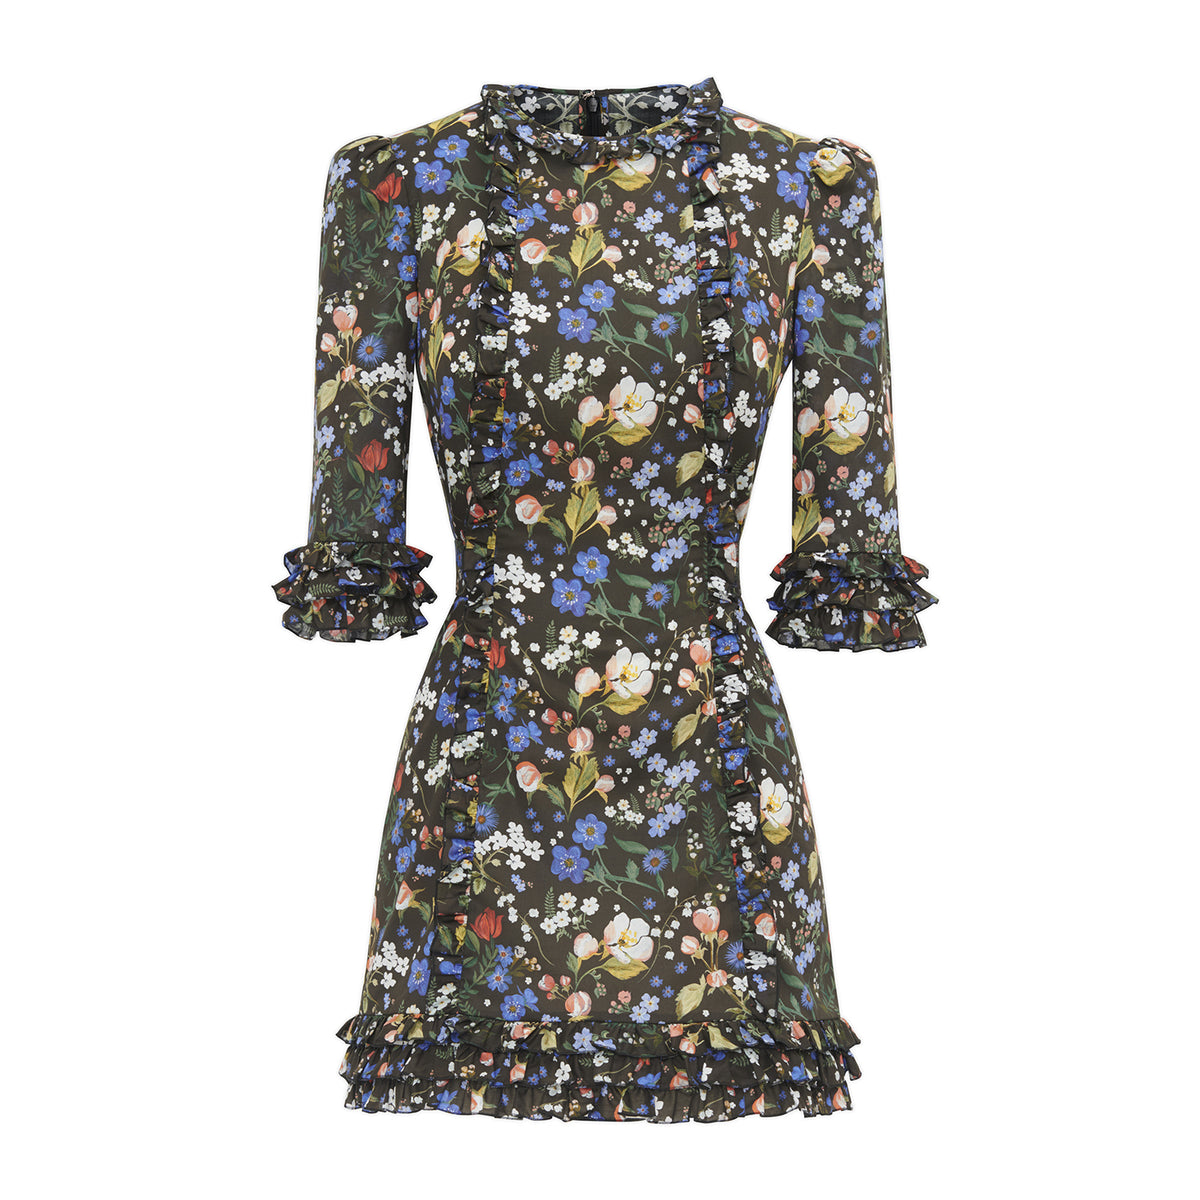 THE FORGET ME NOT MINI CATE DRESS